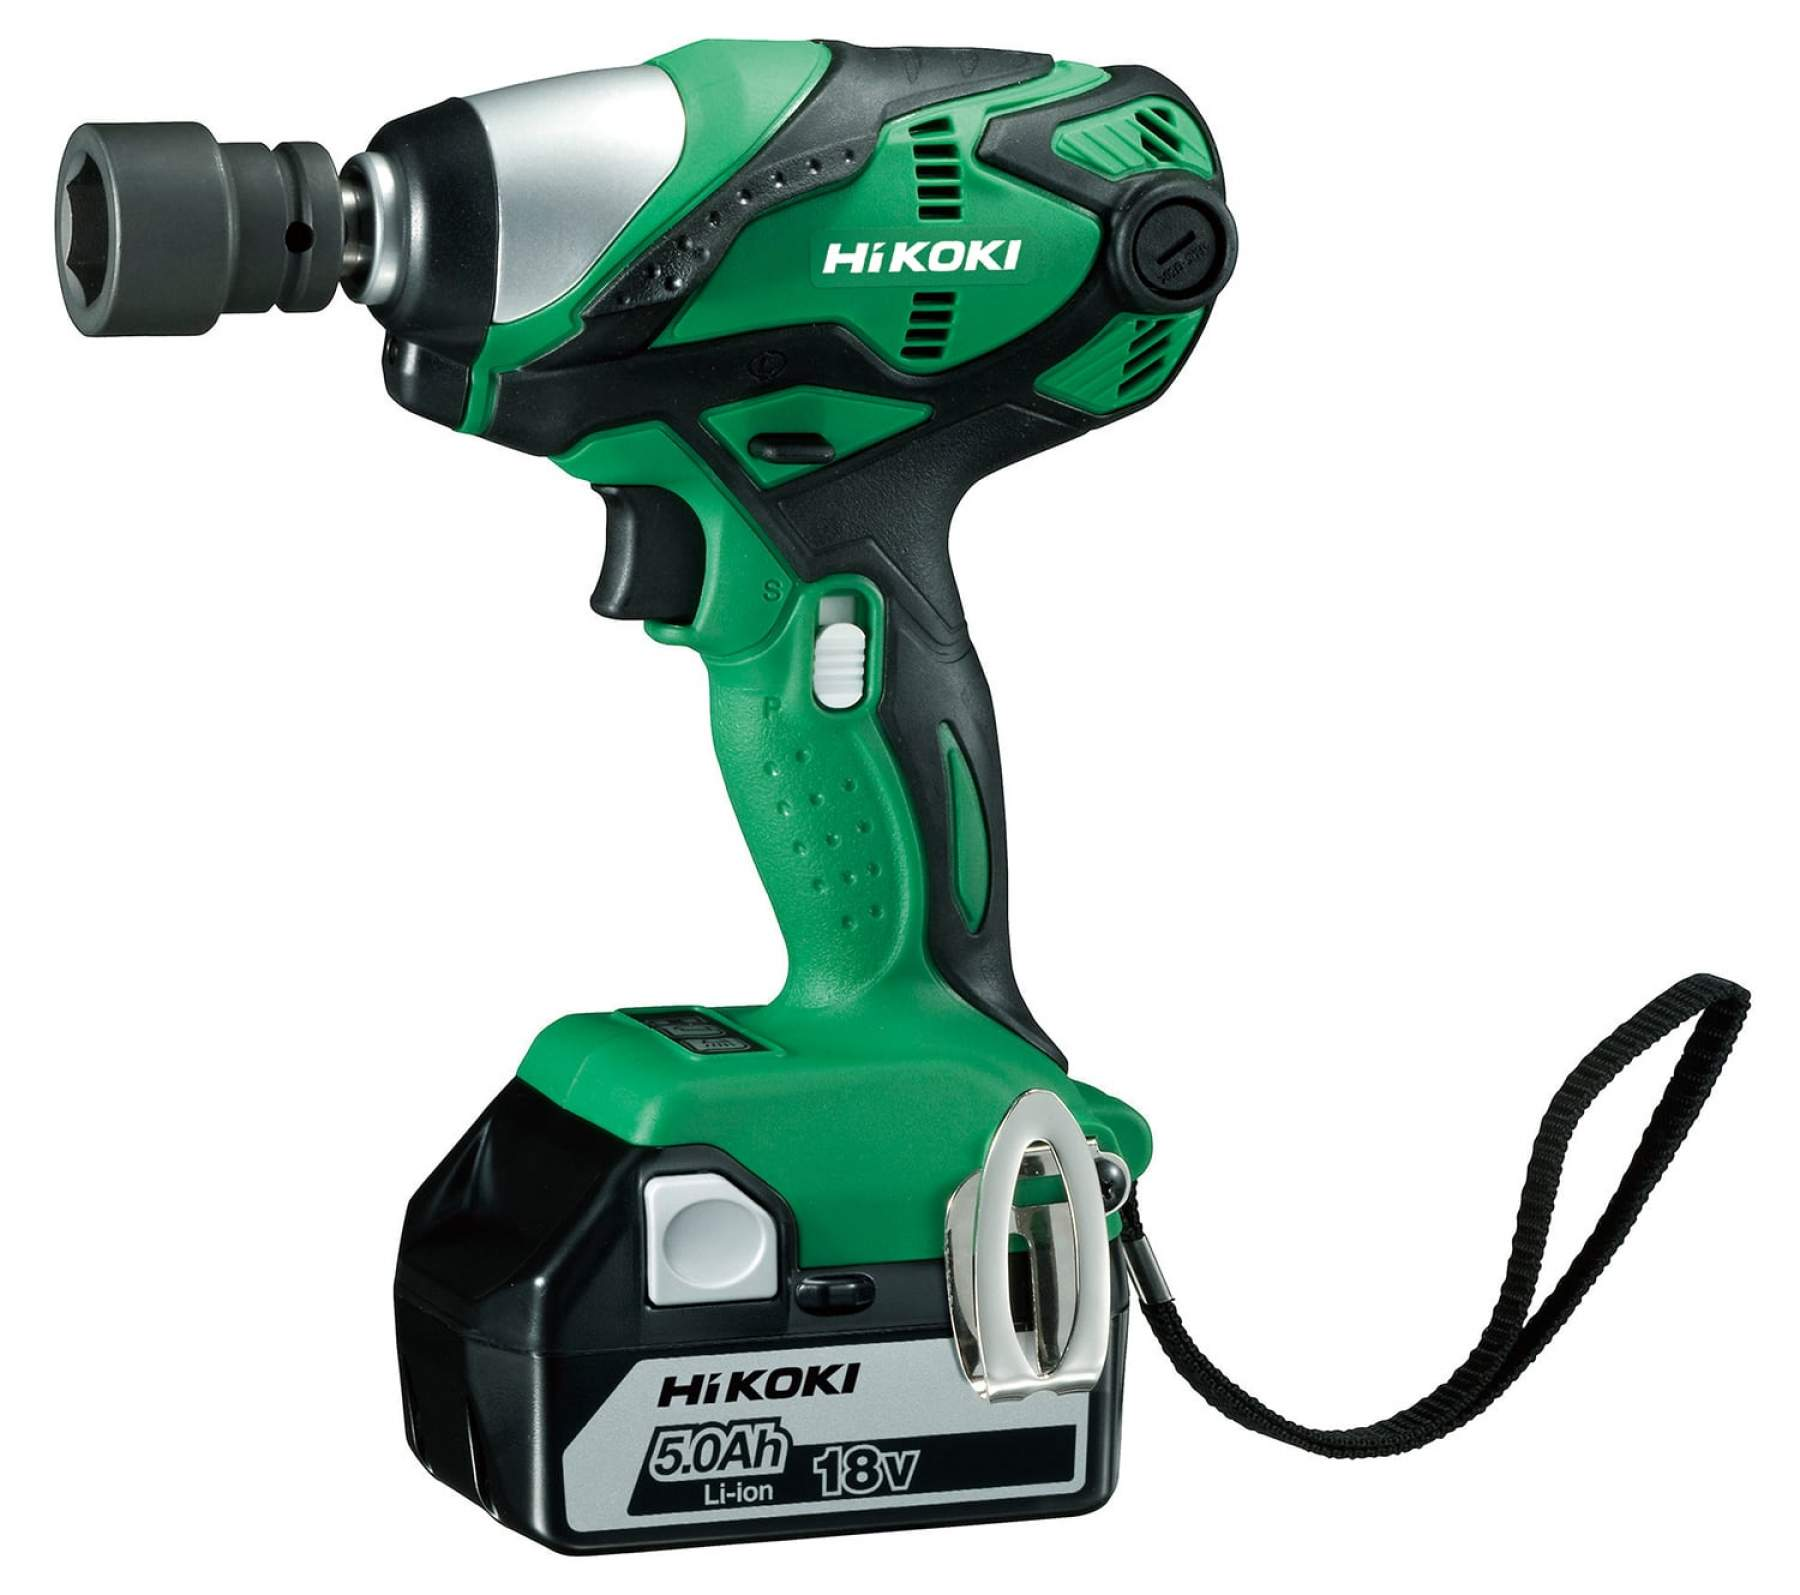 18V Li-Ion Impact Wrench